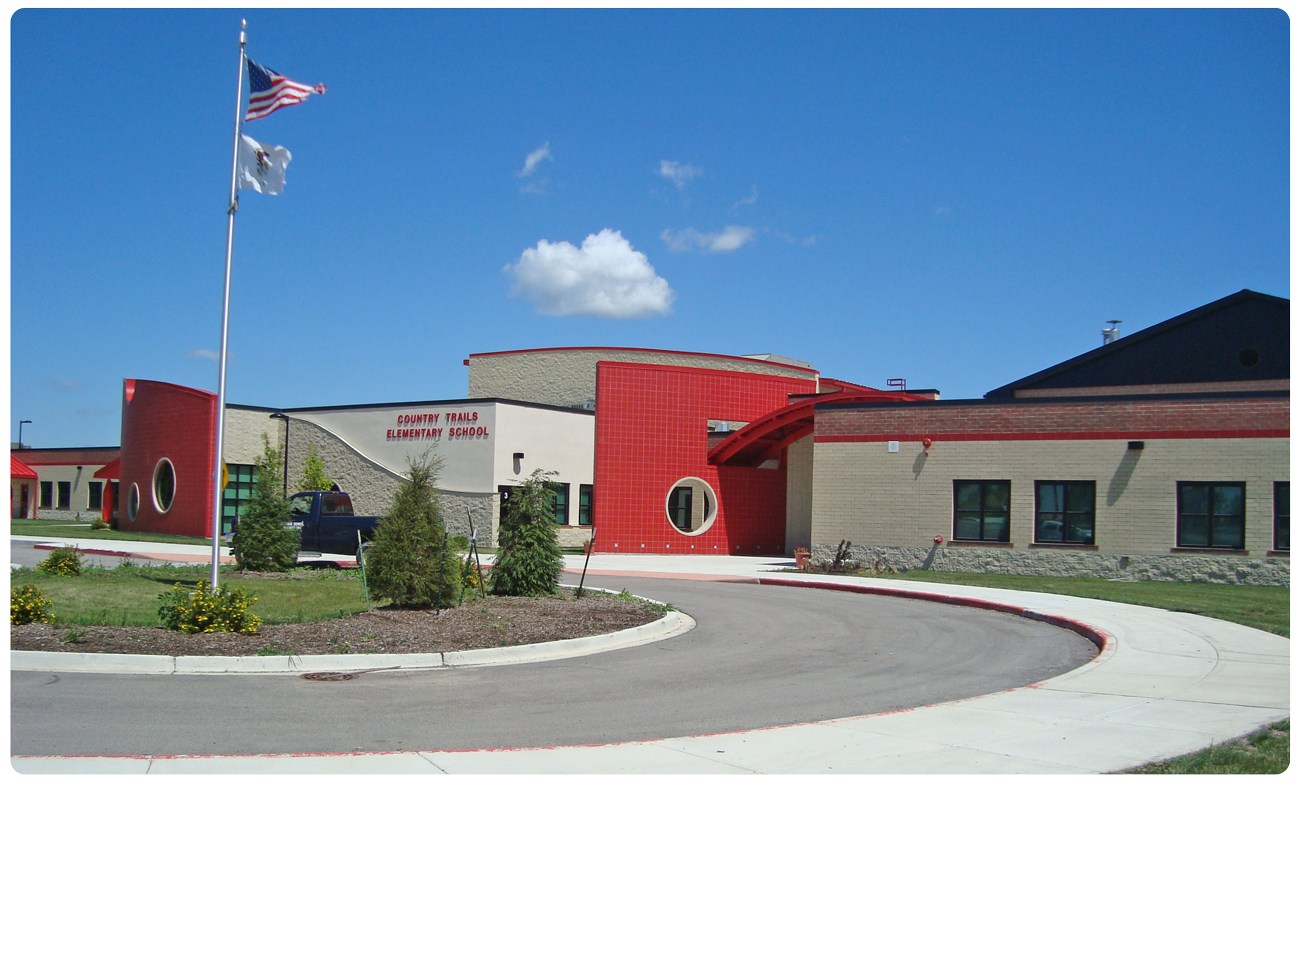 Country Trails Elementary School